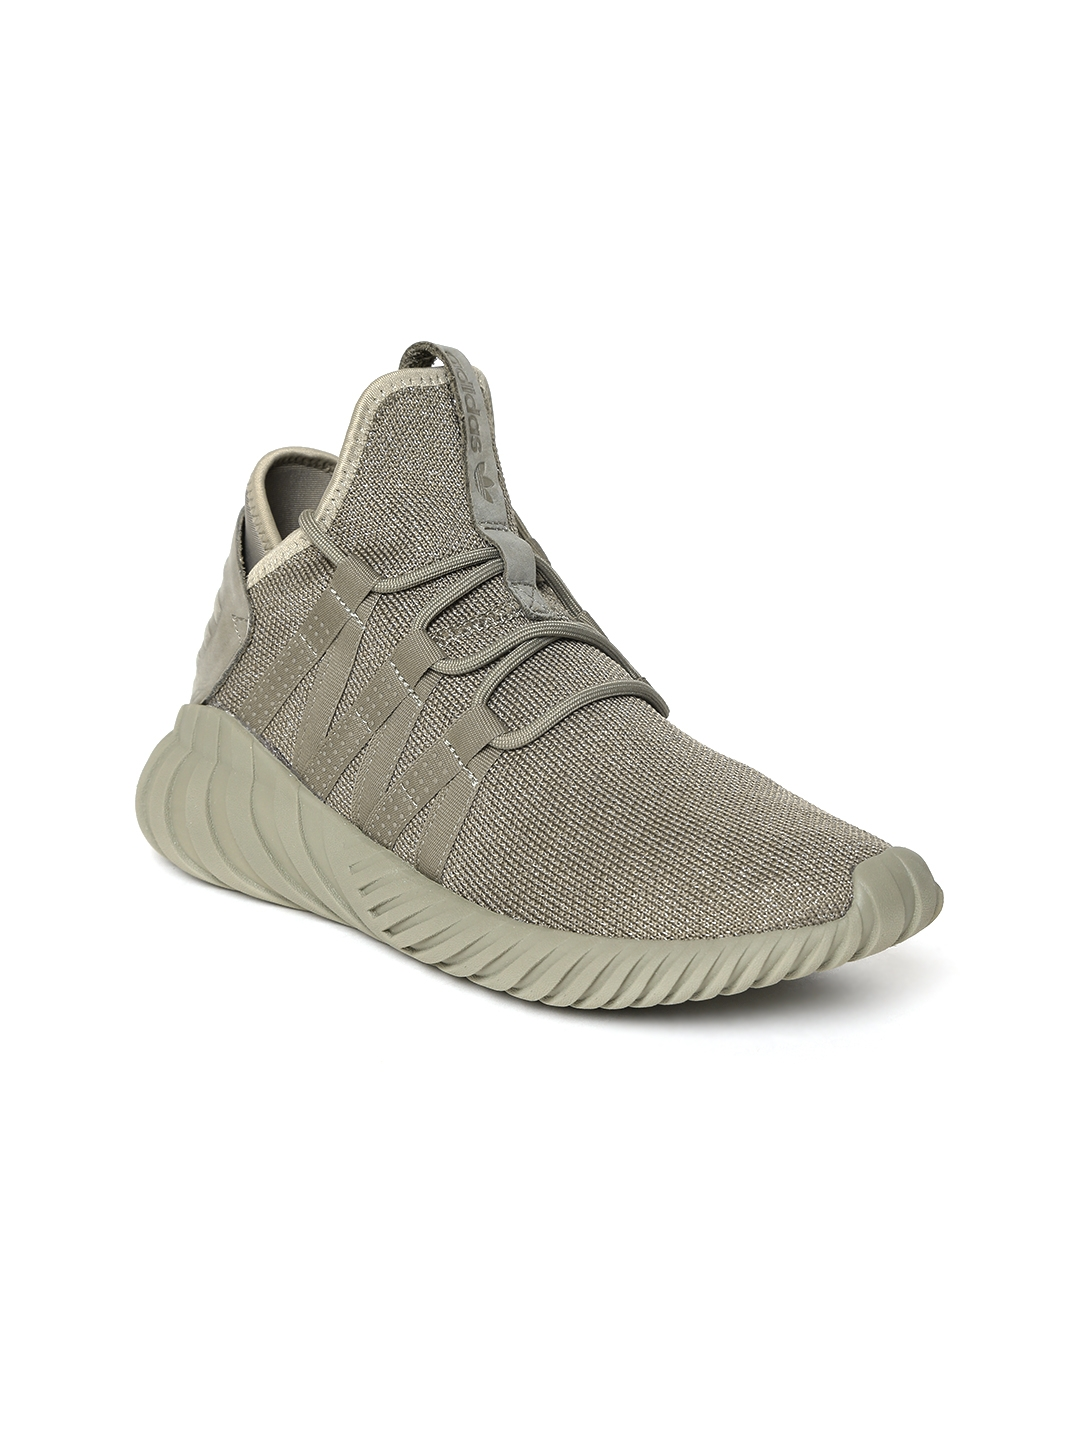 cheap for discount 9b0d7 58ced ADIDAS Originals Women Olive Green Tubular Dawn Shimmer Textile Mid-Top  Sneakers